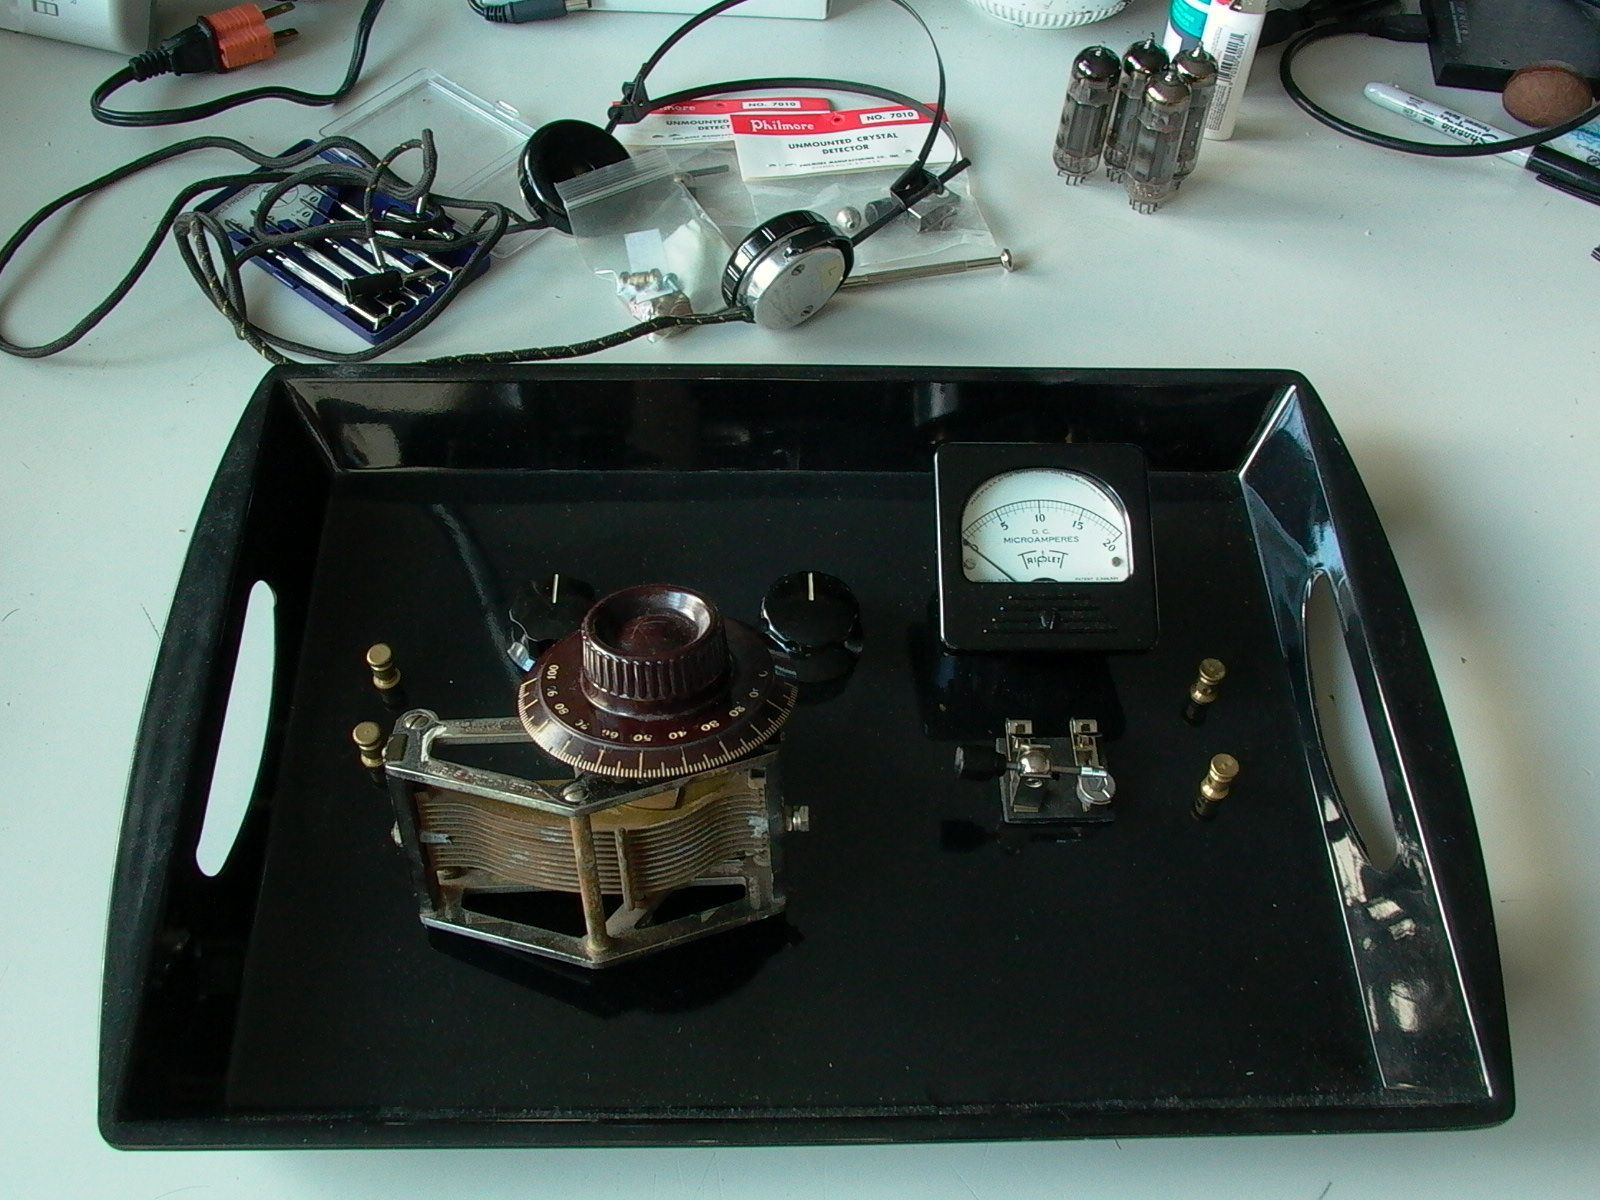 Build A High End Multiband Crystal Radio Alvenh Channe Diode For Low Impedance Headphones Black Melamine Tray With External Components